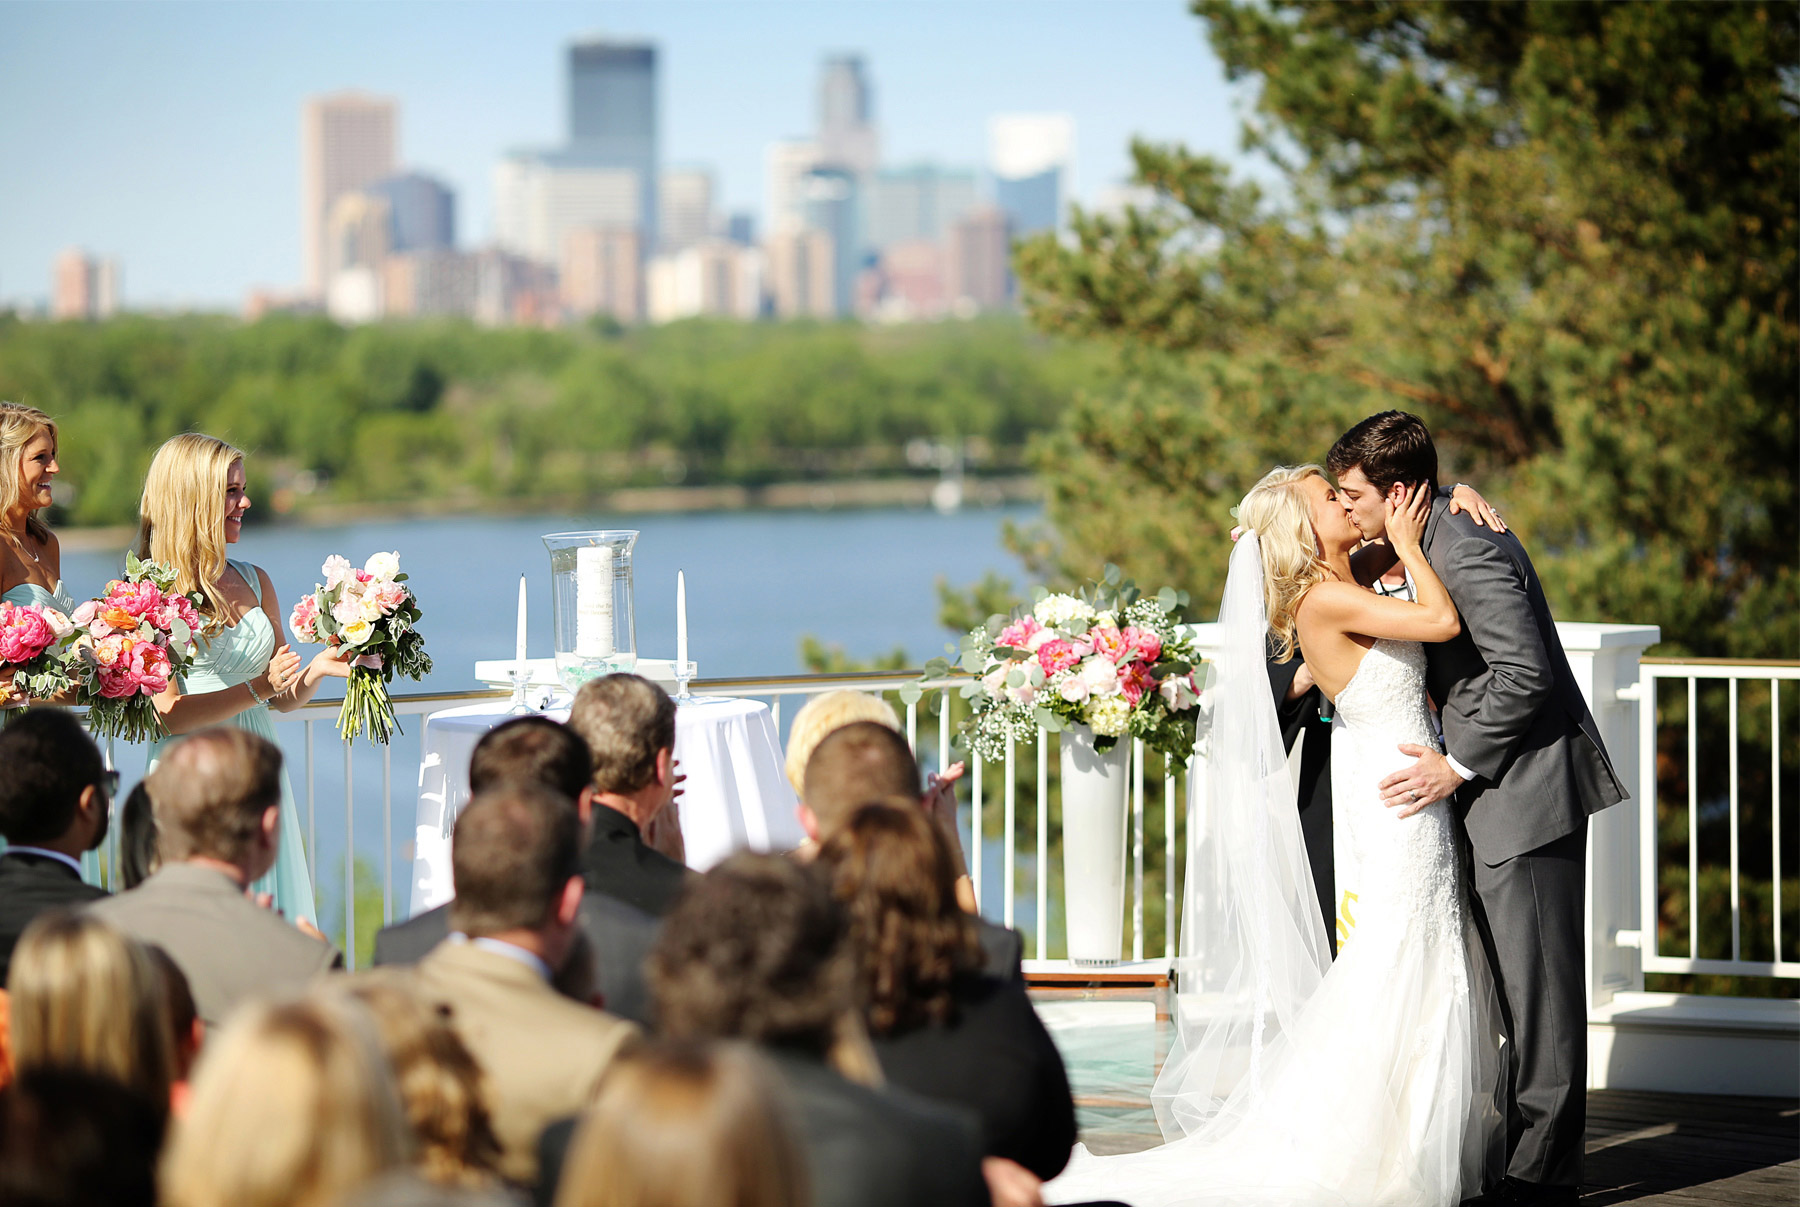 13-Minneapolis-Minnesota-Wedding-Photography-by-Vick-Photography-at-Minikahda-Country-Club-Outdoor-Ceremony-Sarah-&-Chad.jpg